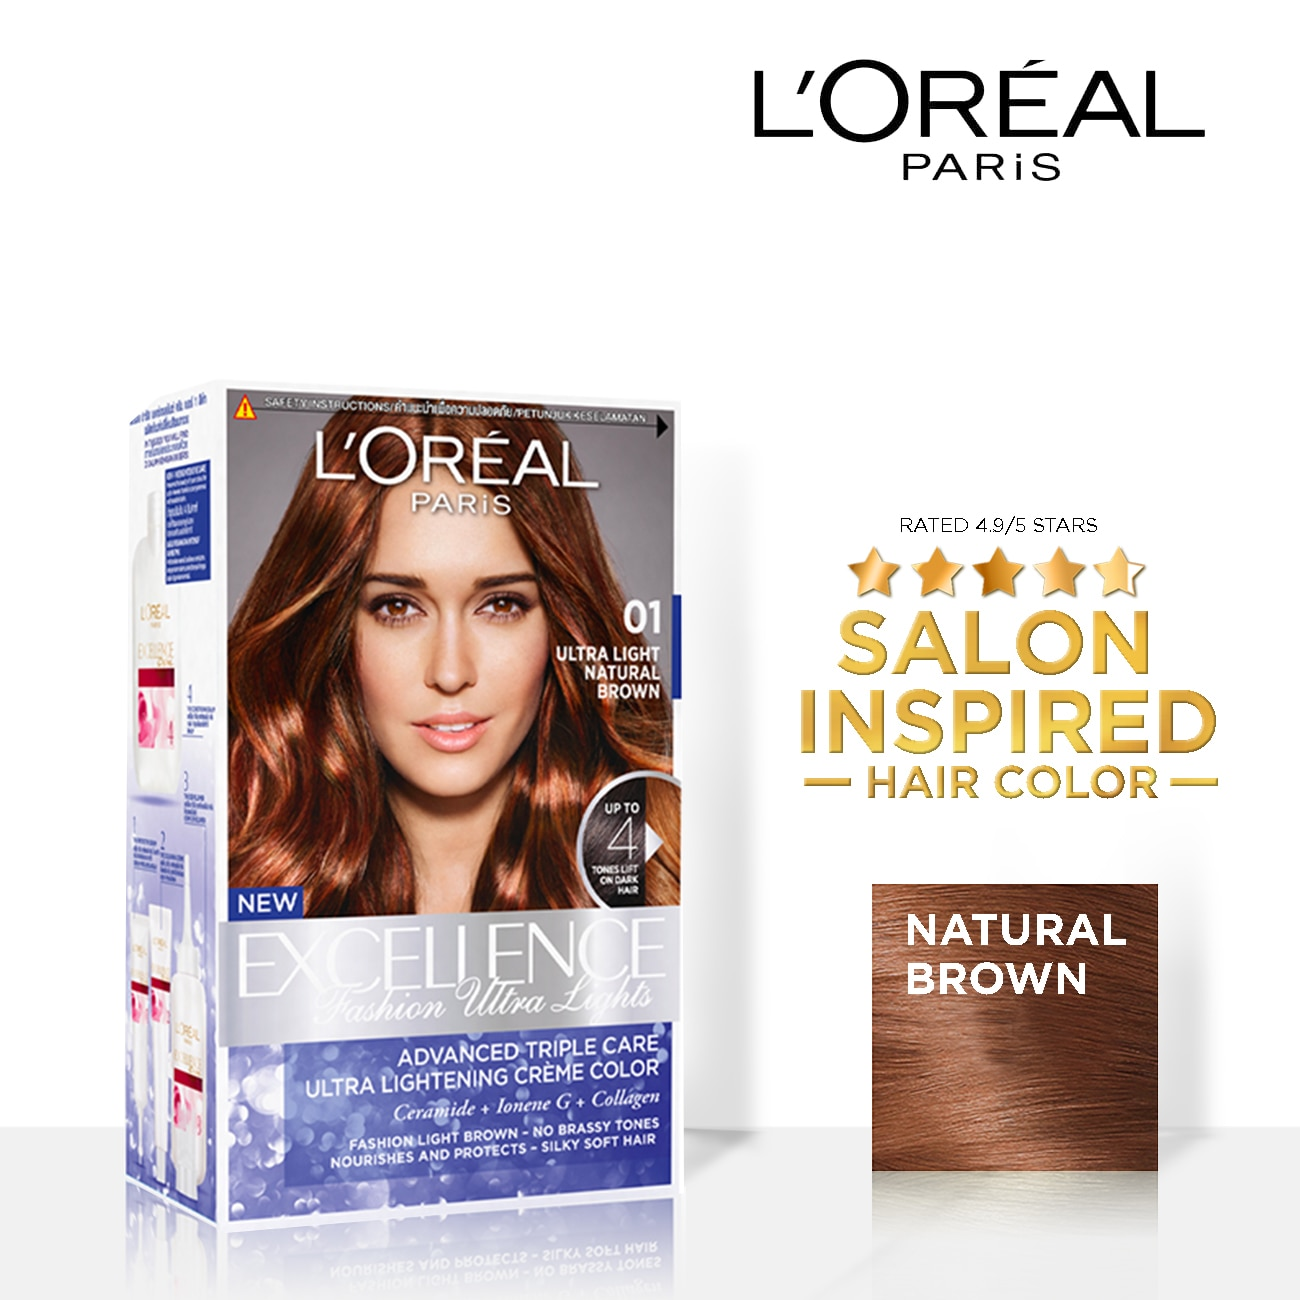 LOREALExcellence Fashion Ultra Lights - 01 Natural Brown  Triple Care Hair Color,PermanentHELLOWT